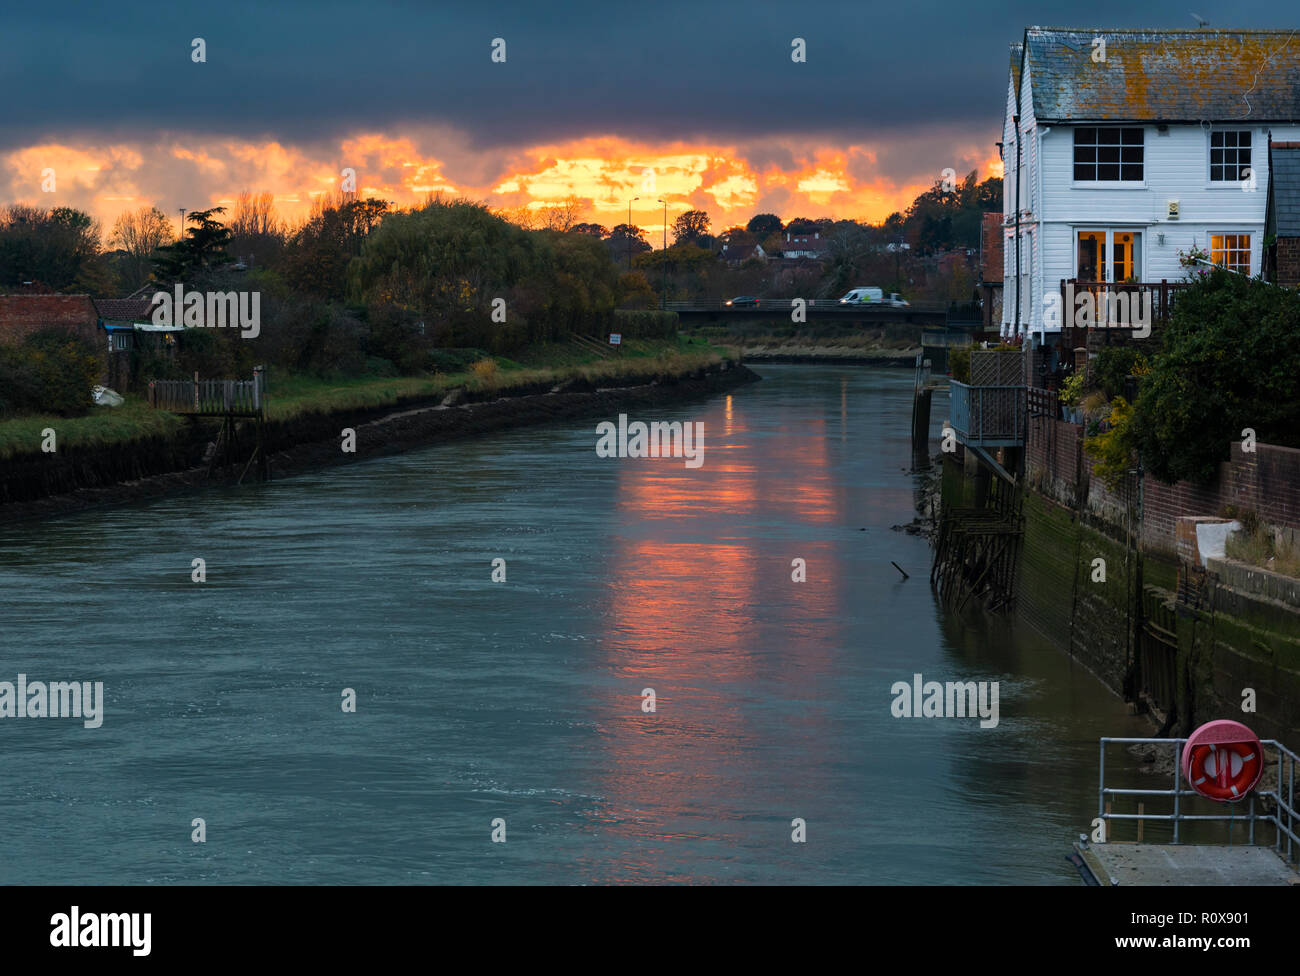 Sun going down in Autumn over the River Arun with riverside houses in Arundel, West Sussex, England, UK. Stock Photo